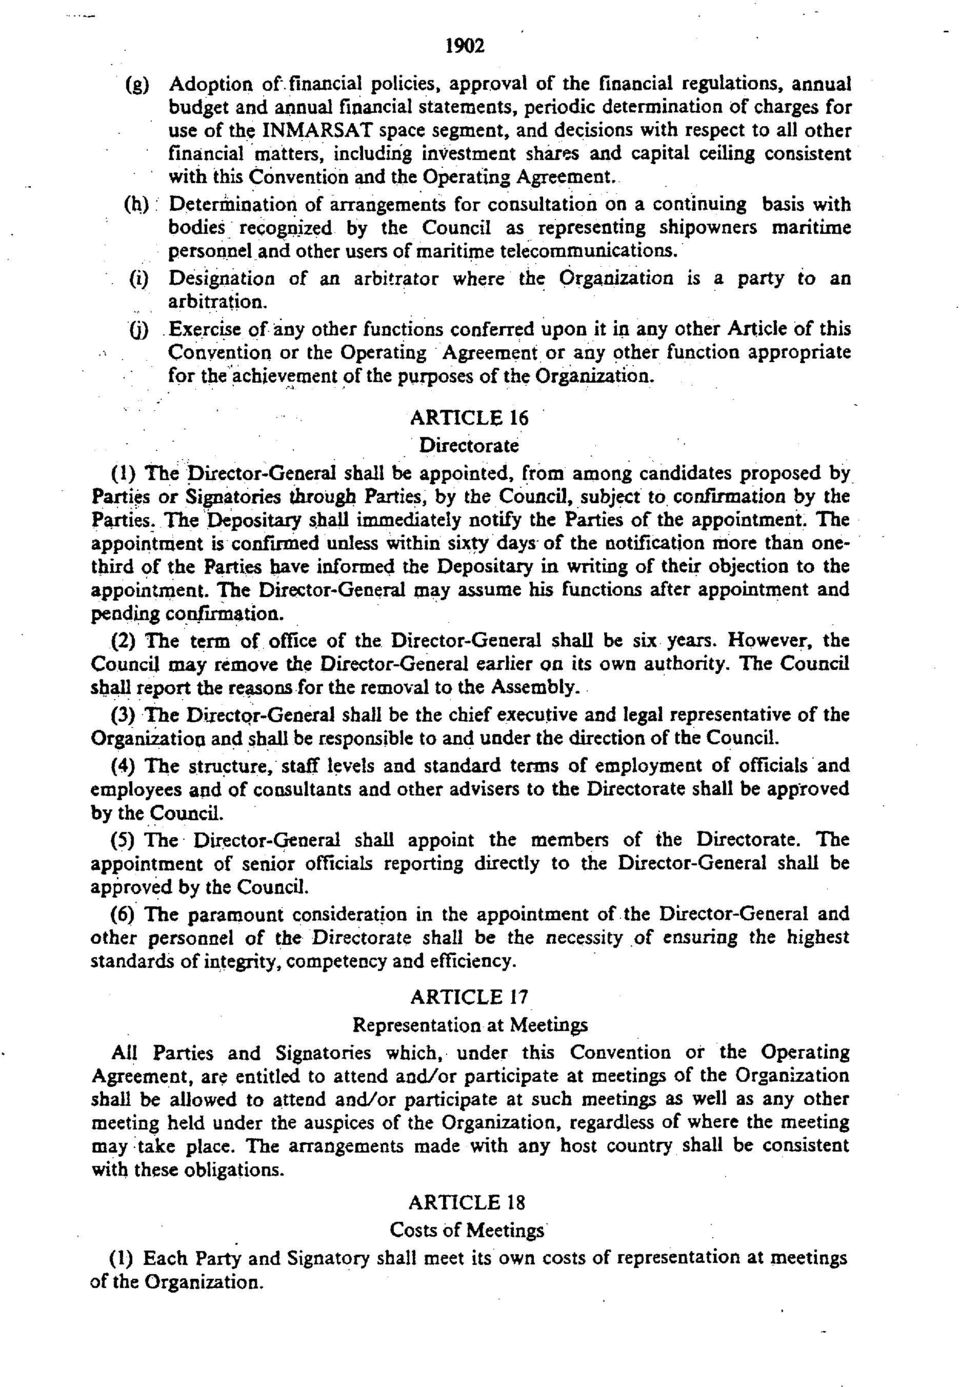 (h) Determination of arrangements for consultation on a continuing basis with bodies recognized by the Council as representing shipowners maritime personnel and other users of maritime